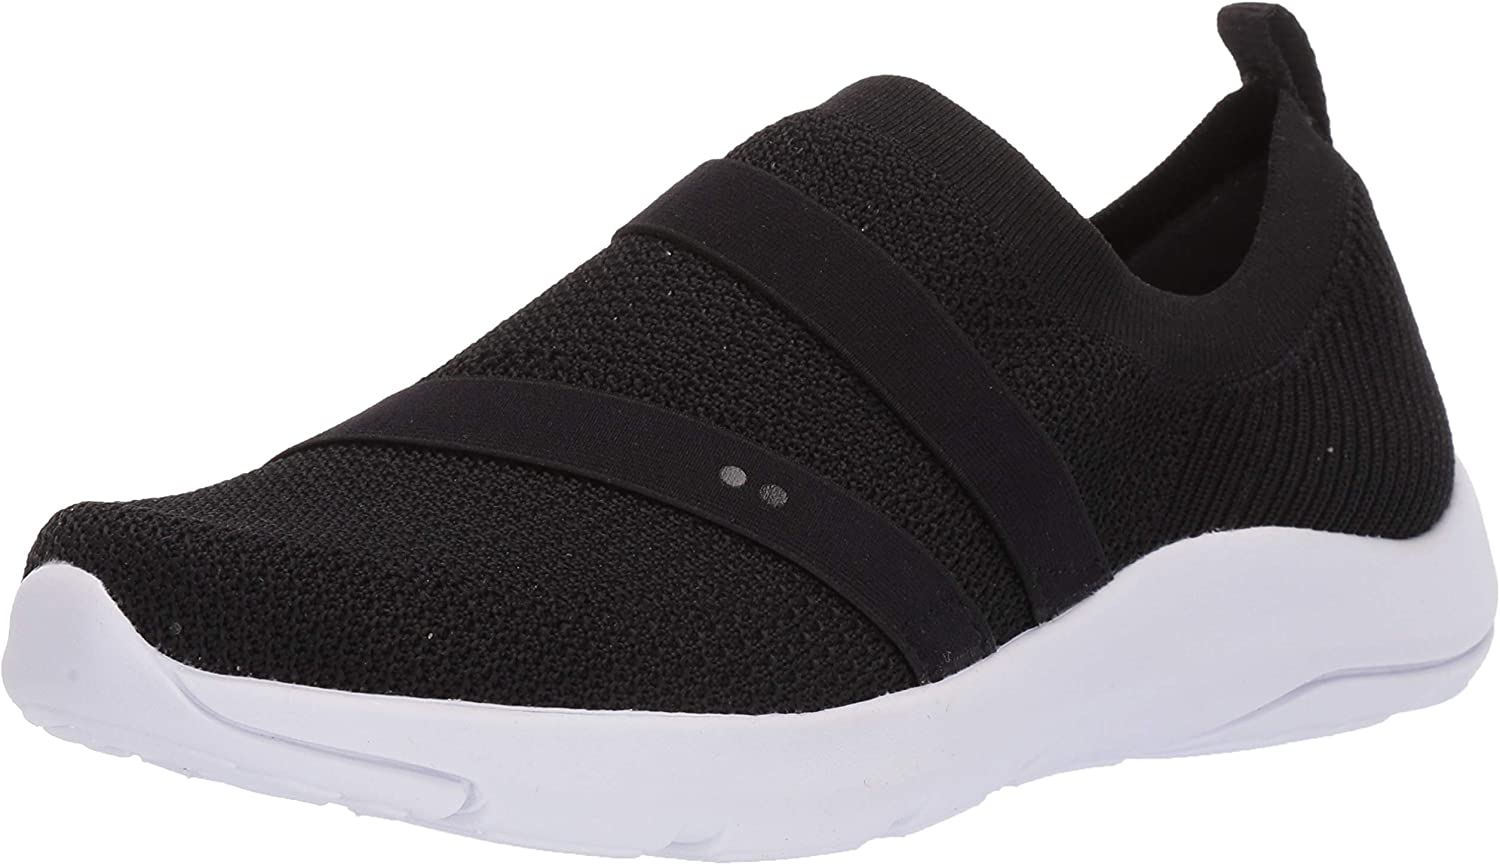 Ryka Women's Ethereal Quality discount inspection Shoe Nrg Walking